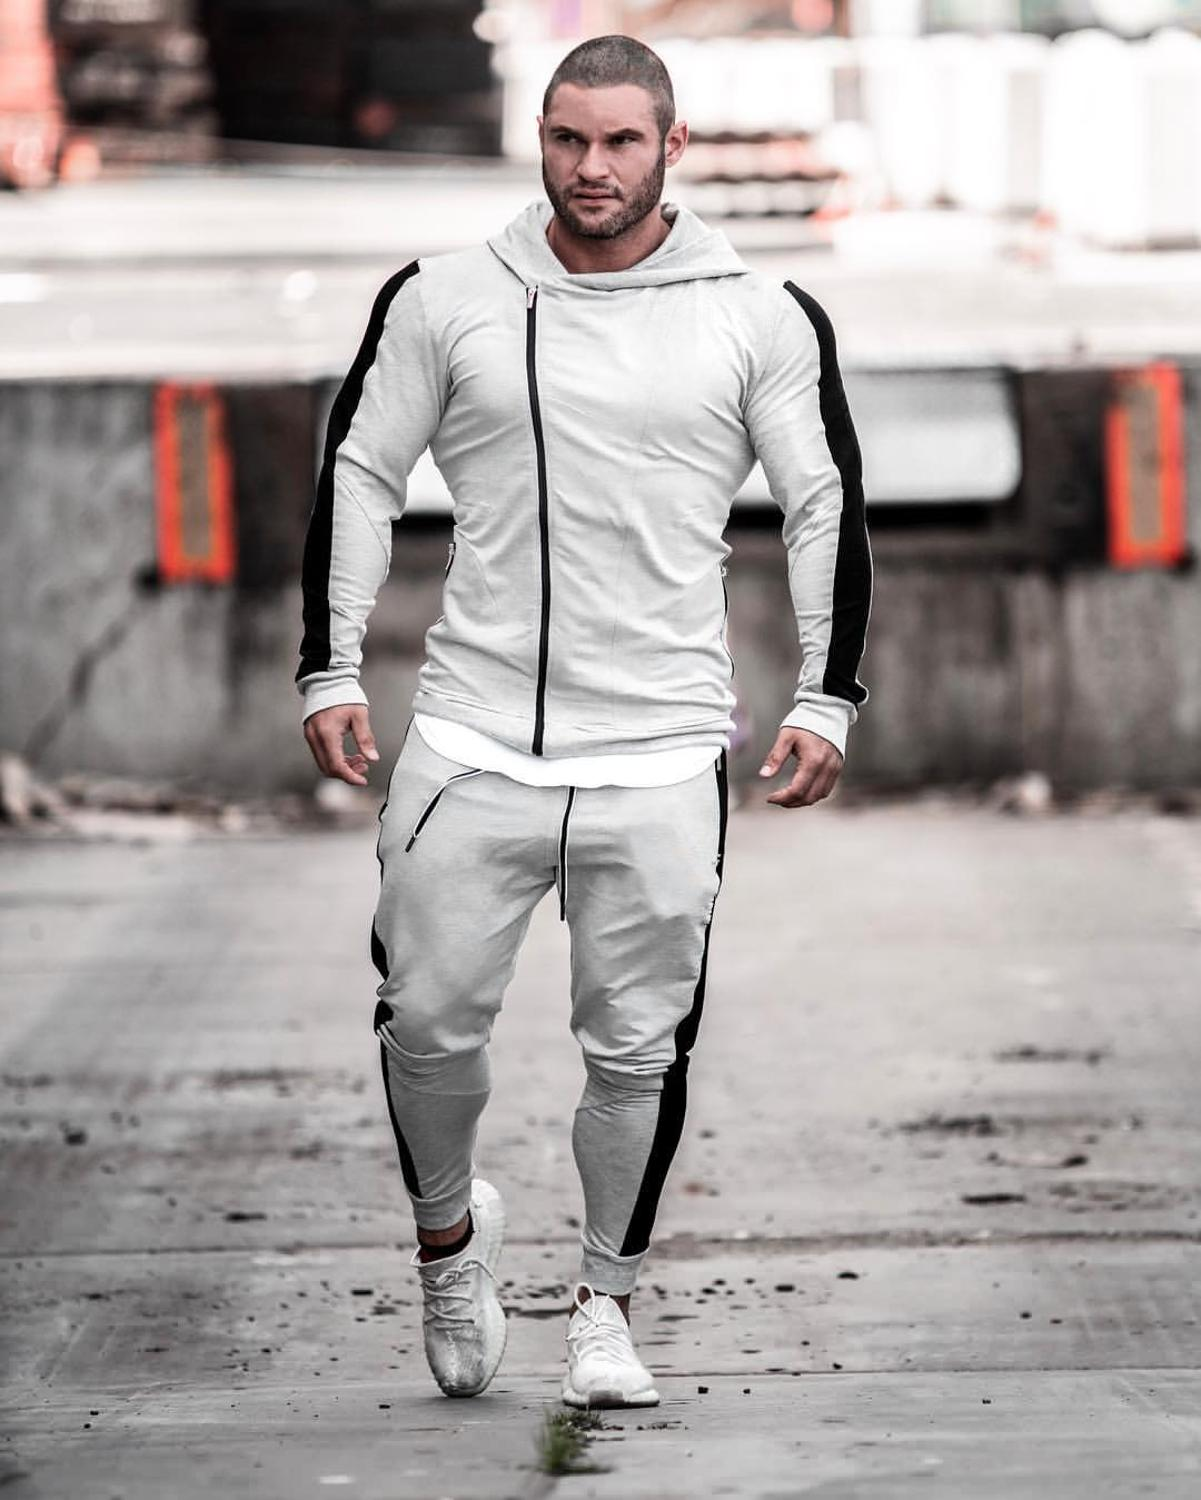 Winter Comfortable Cotton Sports Set Men's Fashion Clothing Fitness Casual Black Sweater Hoodie + Sports Pants Men's Tracksuit